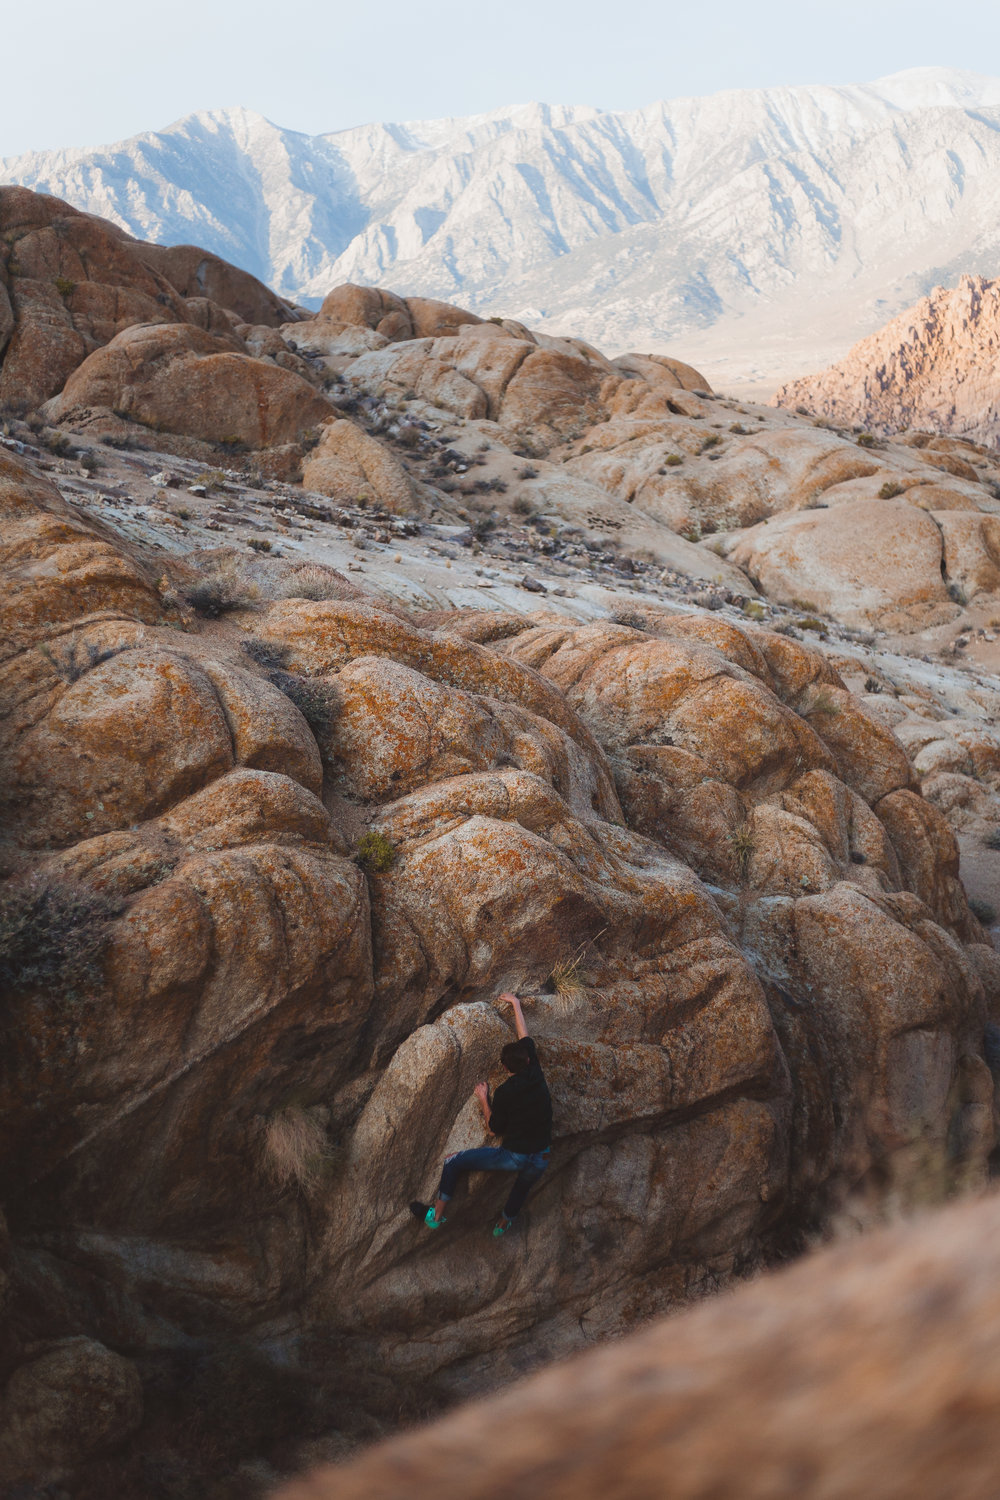 CLIMBING AT THE BASE OF WHITNEY